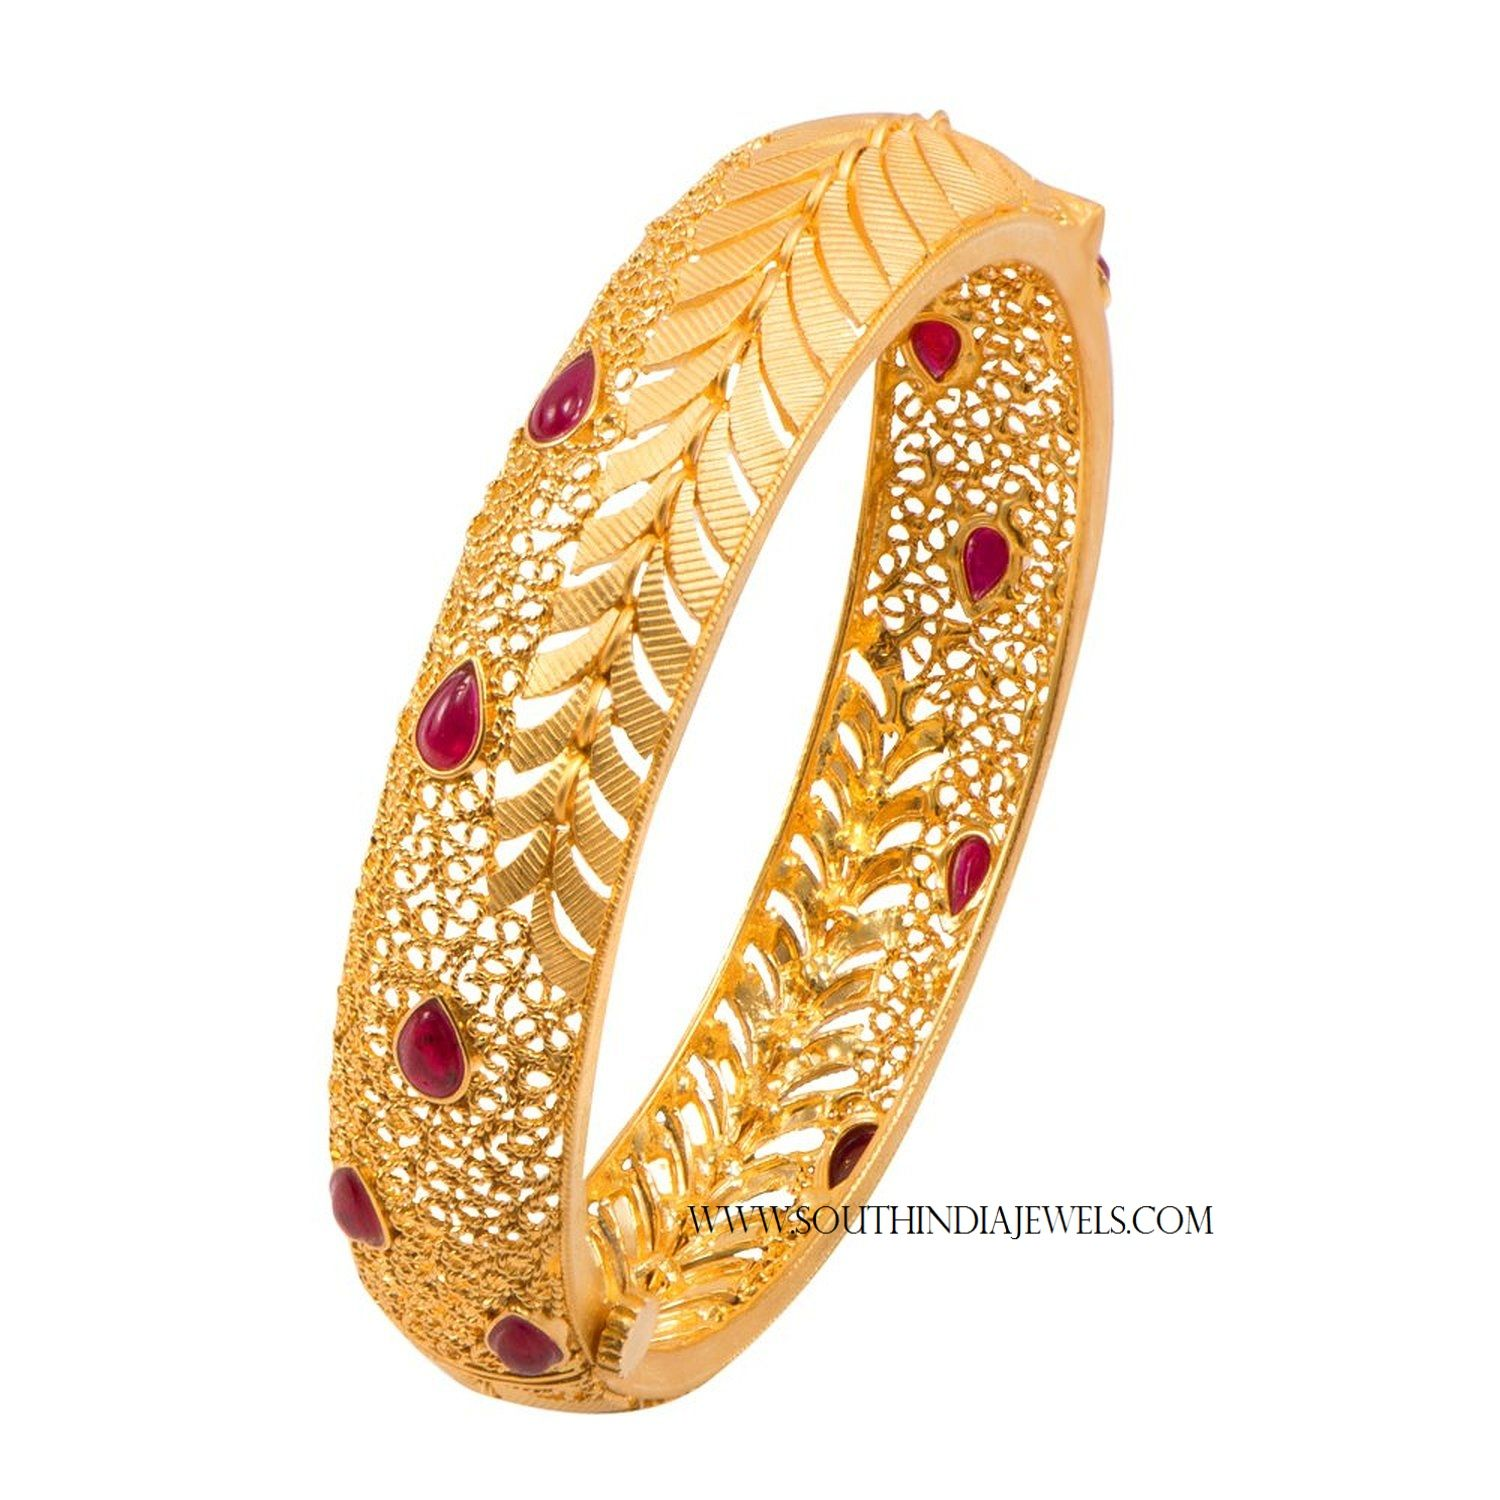 Joy Alukkas Gold Bangles Designs With Price South India Jewels